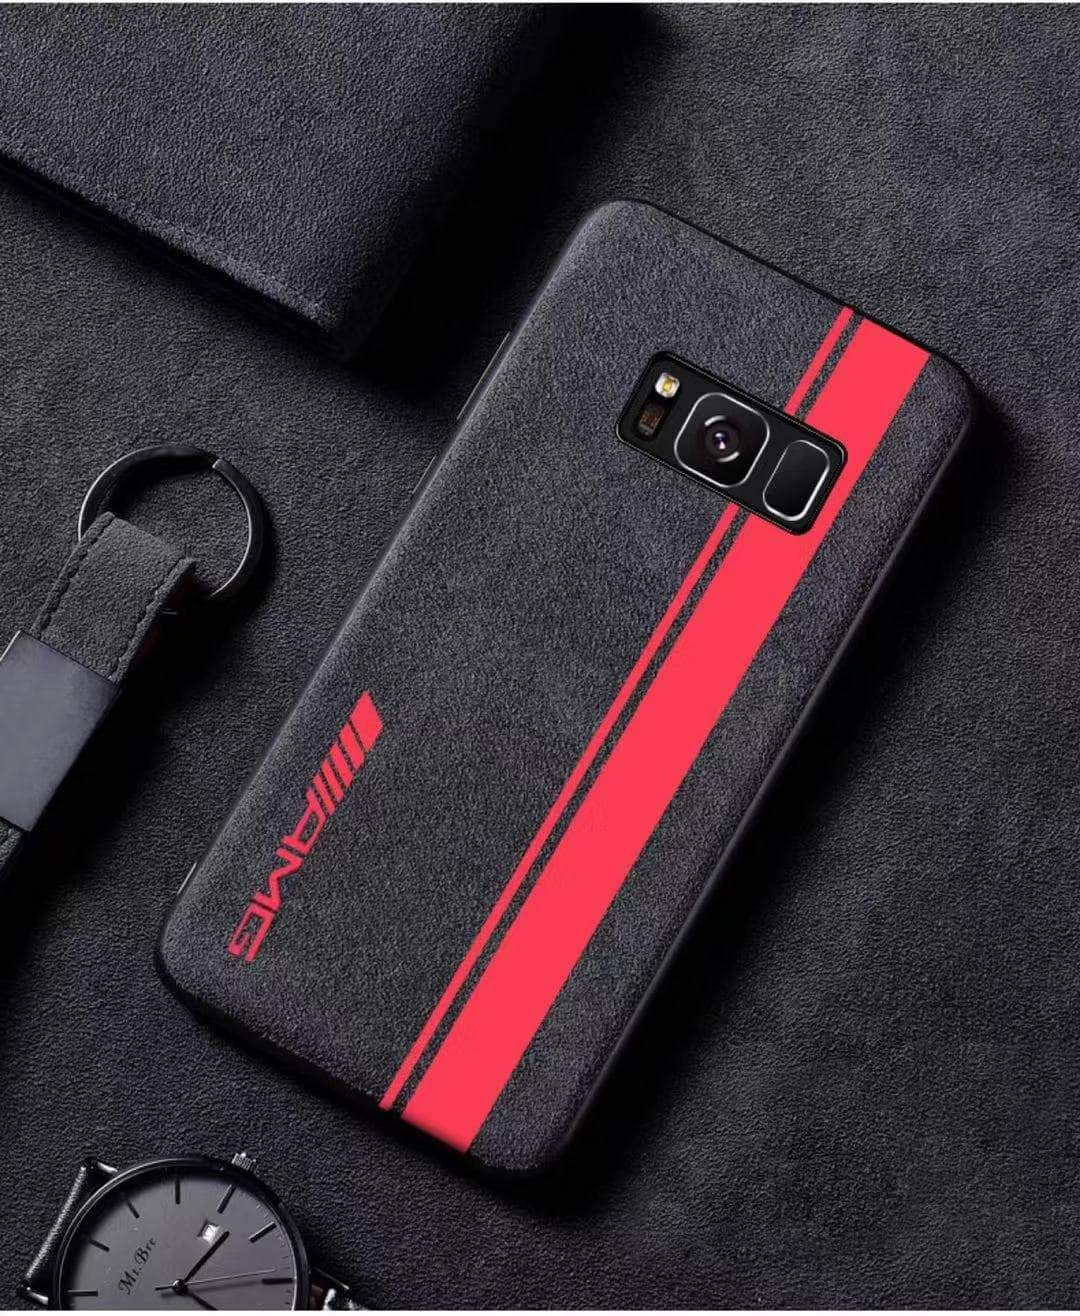 Broshop Phone Case AMG Red Line / Samsung Galaxy S8 LIMITED EDITION Luxury Suede/Alcantara Samsung Case